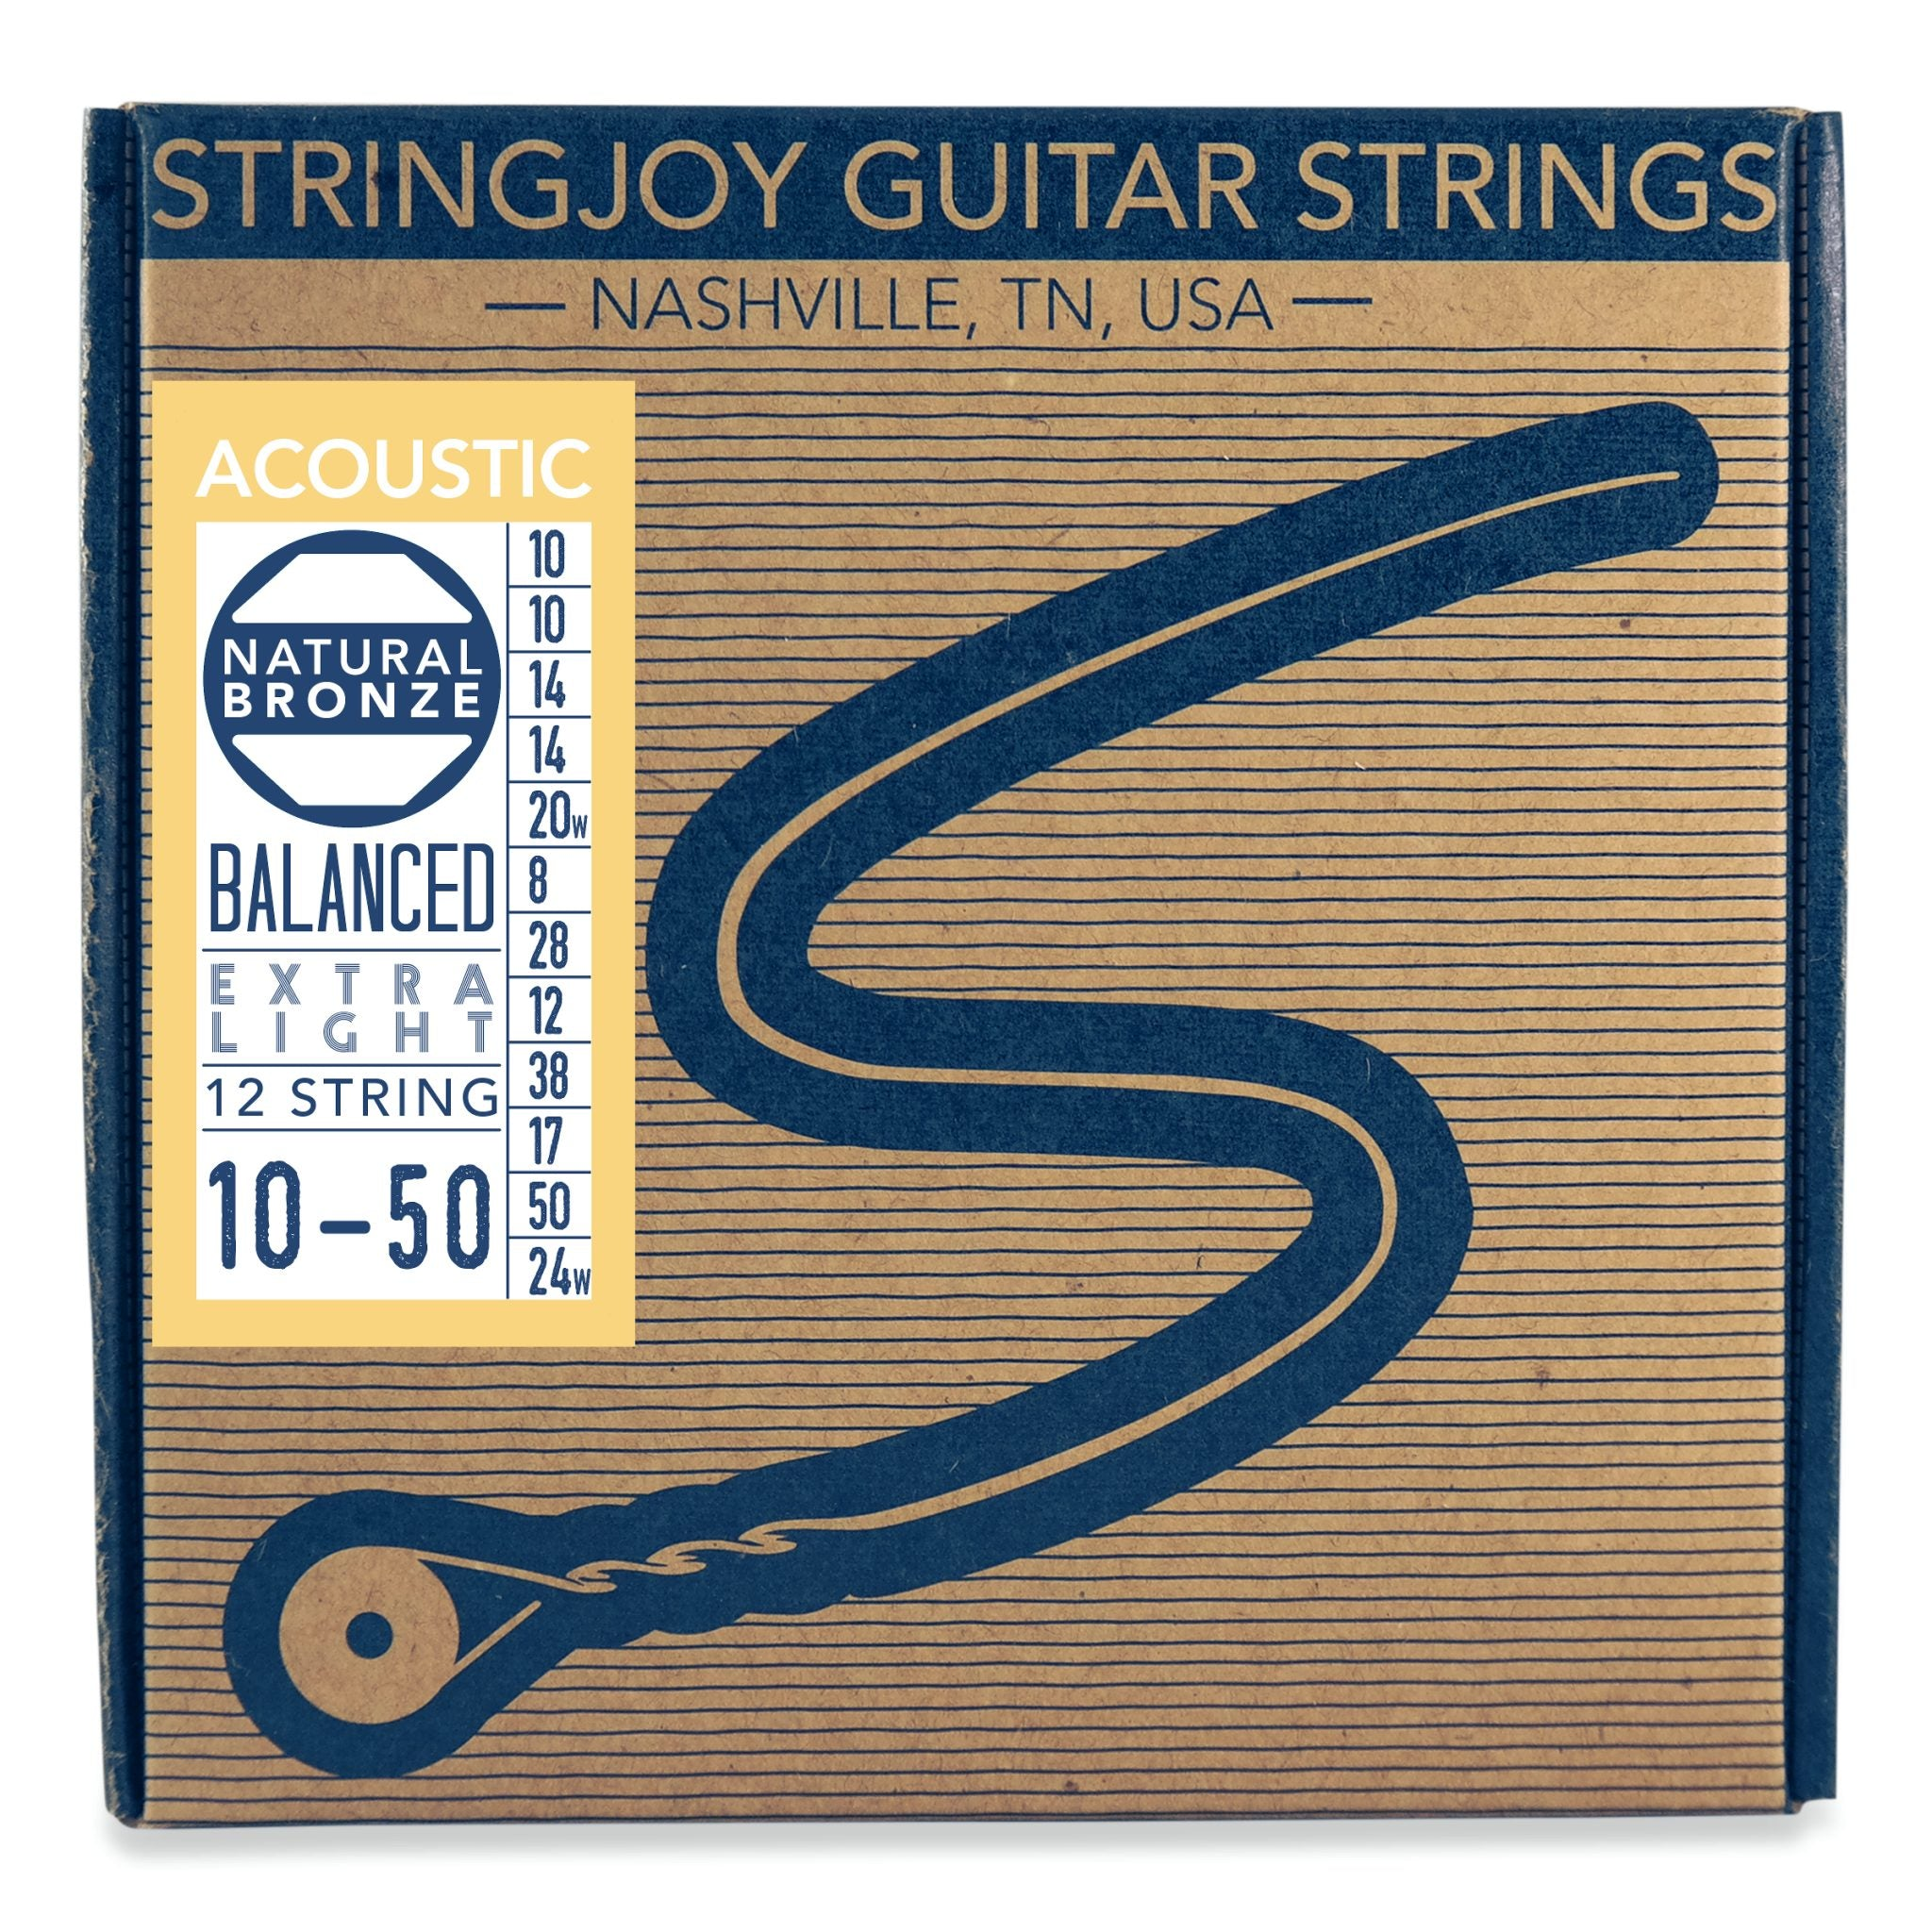 Stringjoy Naturals - Extra Light Gauge (10-50) Phosphor Bronze Acoustic Guitar Strings